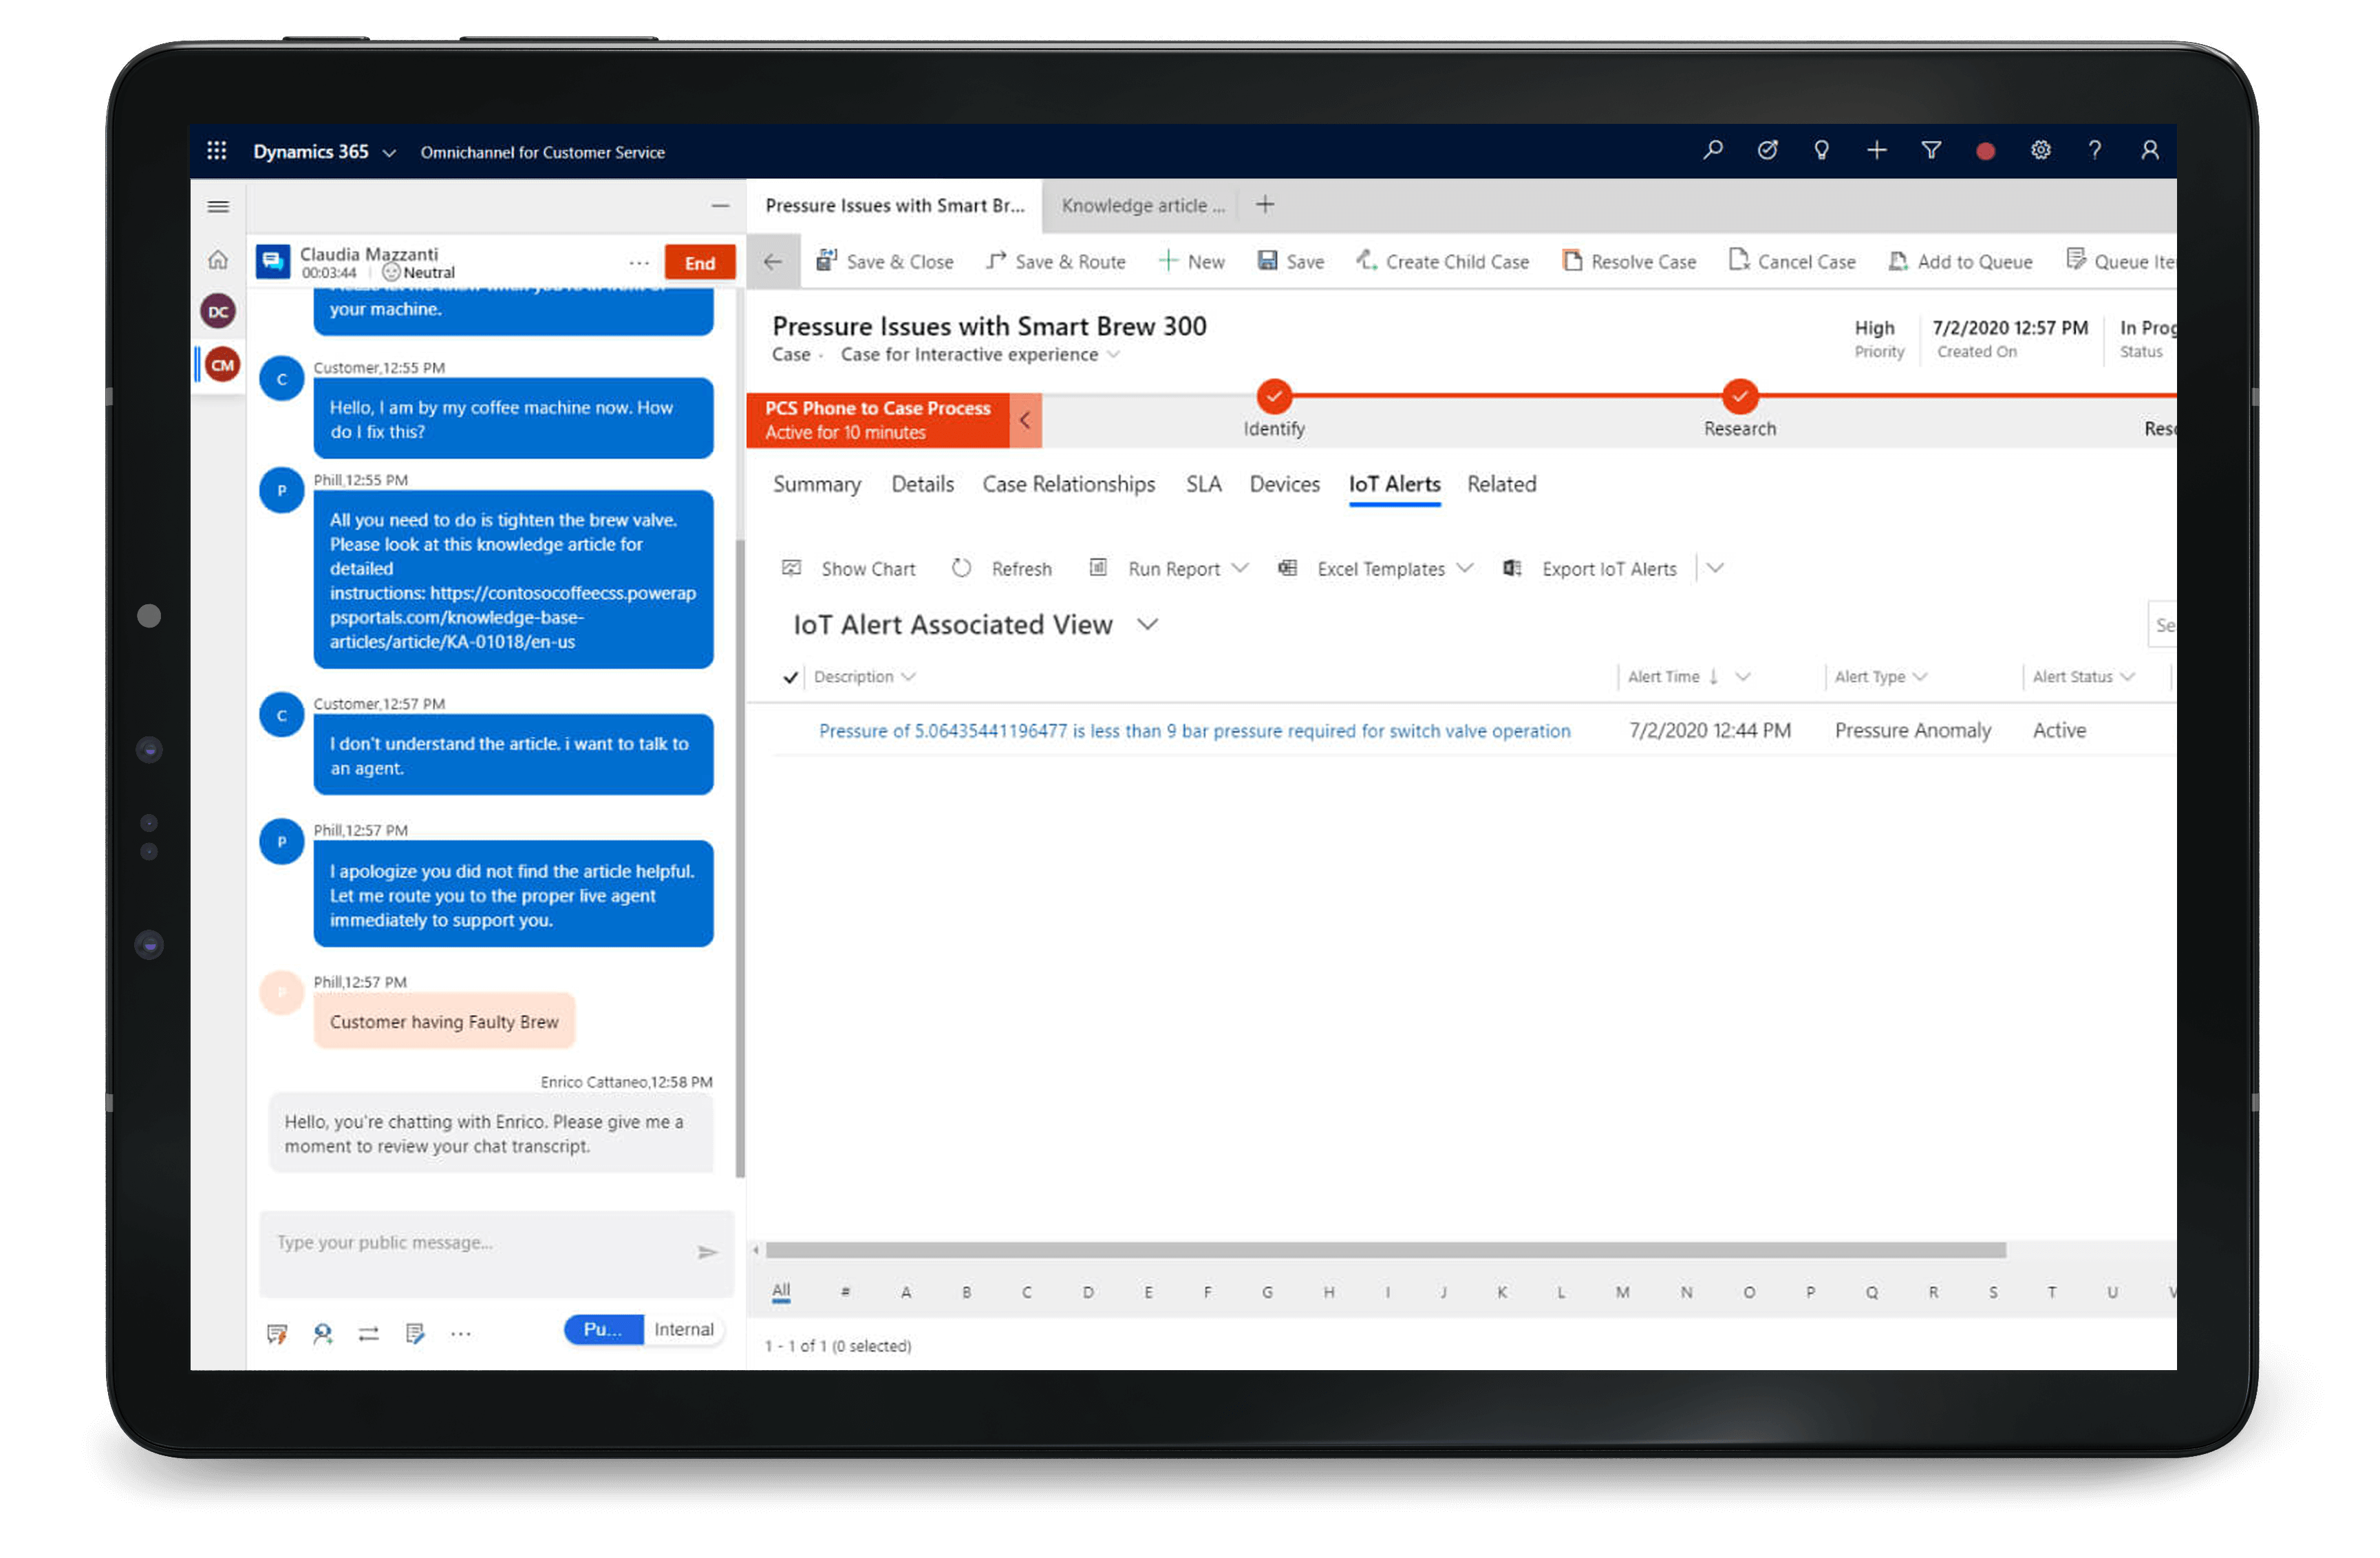 Dynamics 365 Customer Service help customer service managers solve problems